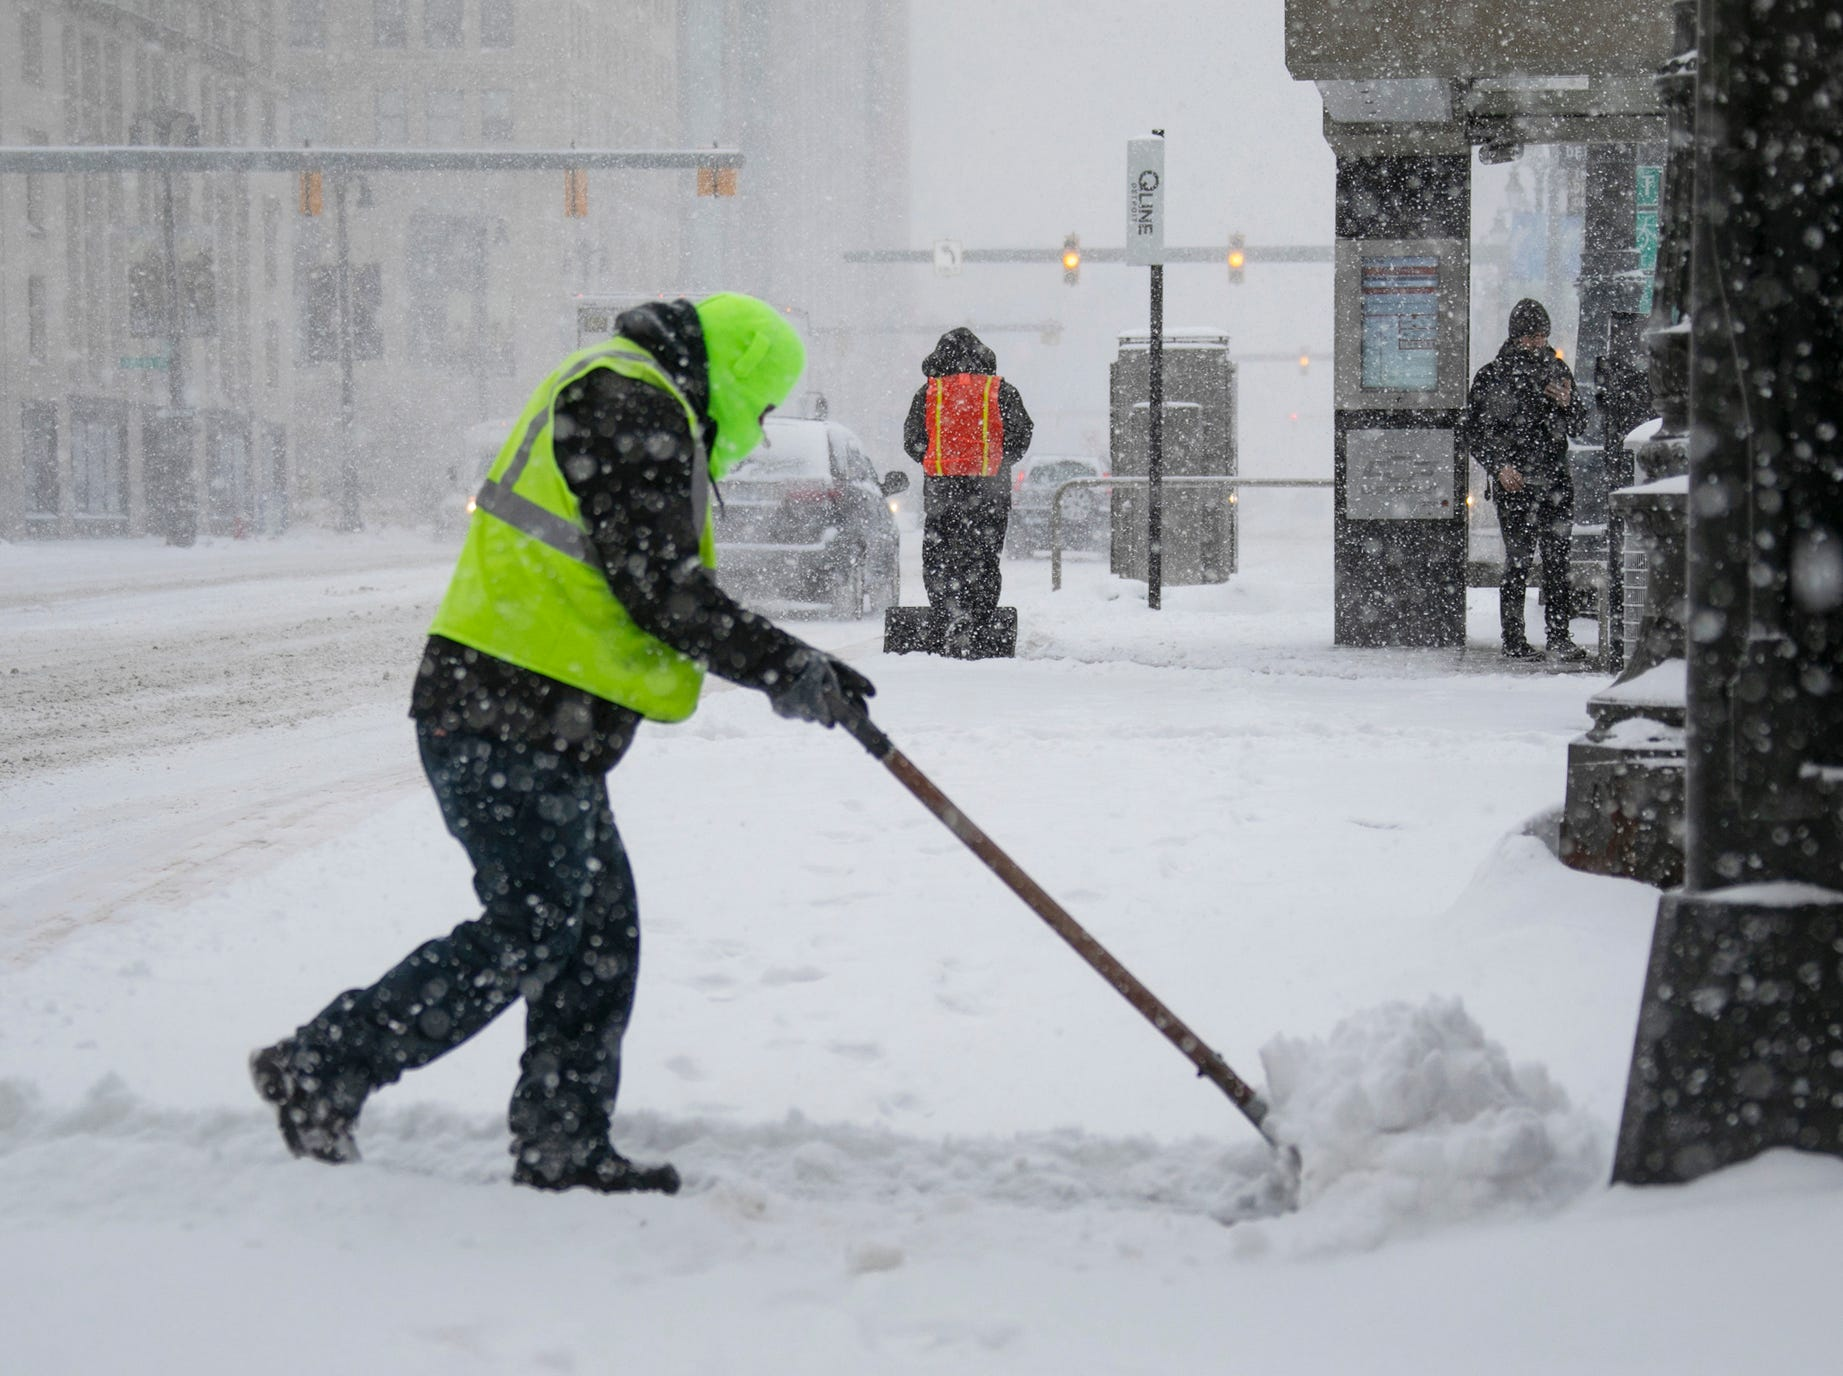 Qline employee Jorge Aguilar shovels snow at the Grand Circus Qline stop as heavy snows hit metro Detroit on Monday, Jan. 28, 2019.